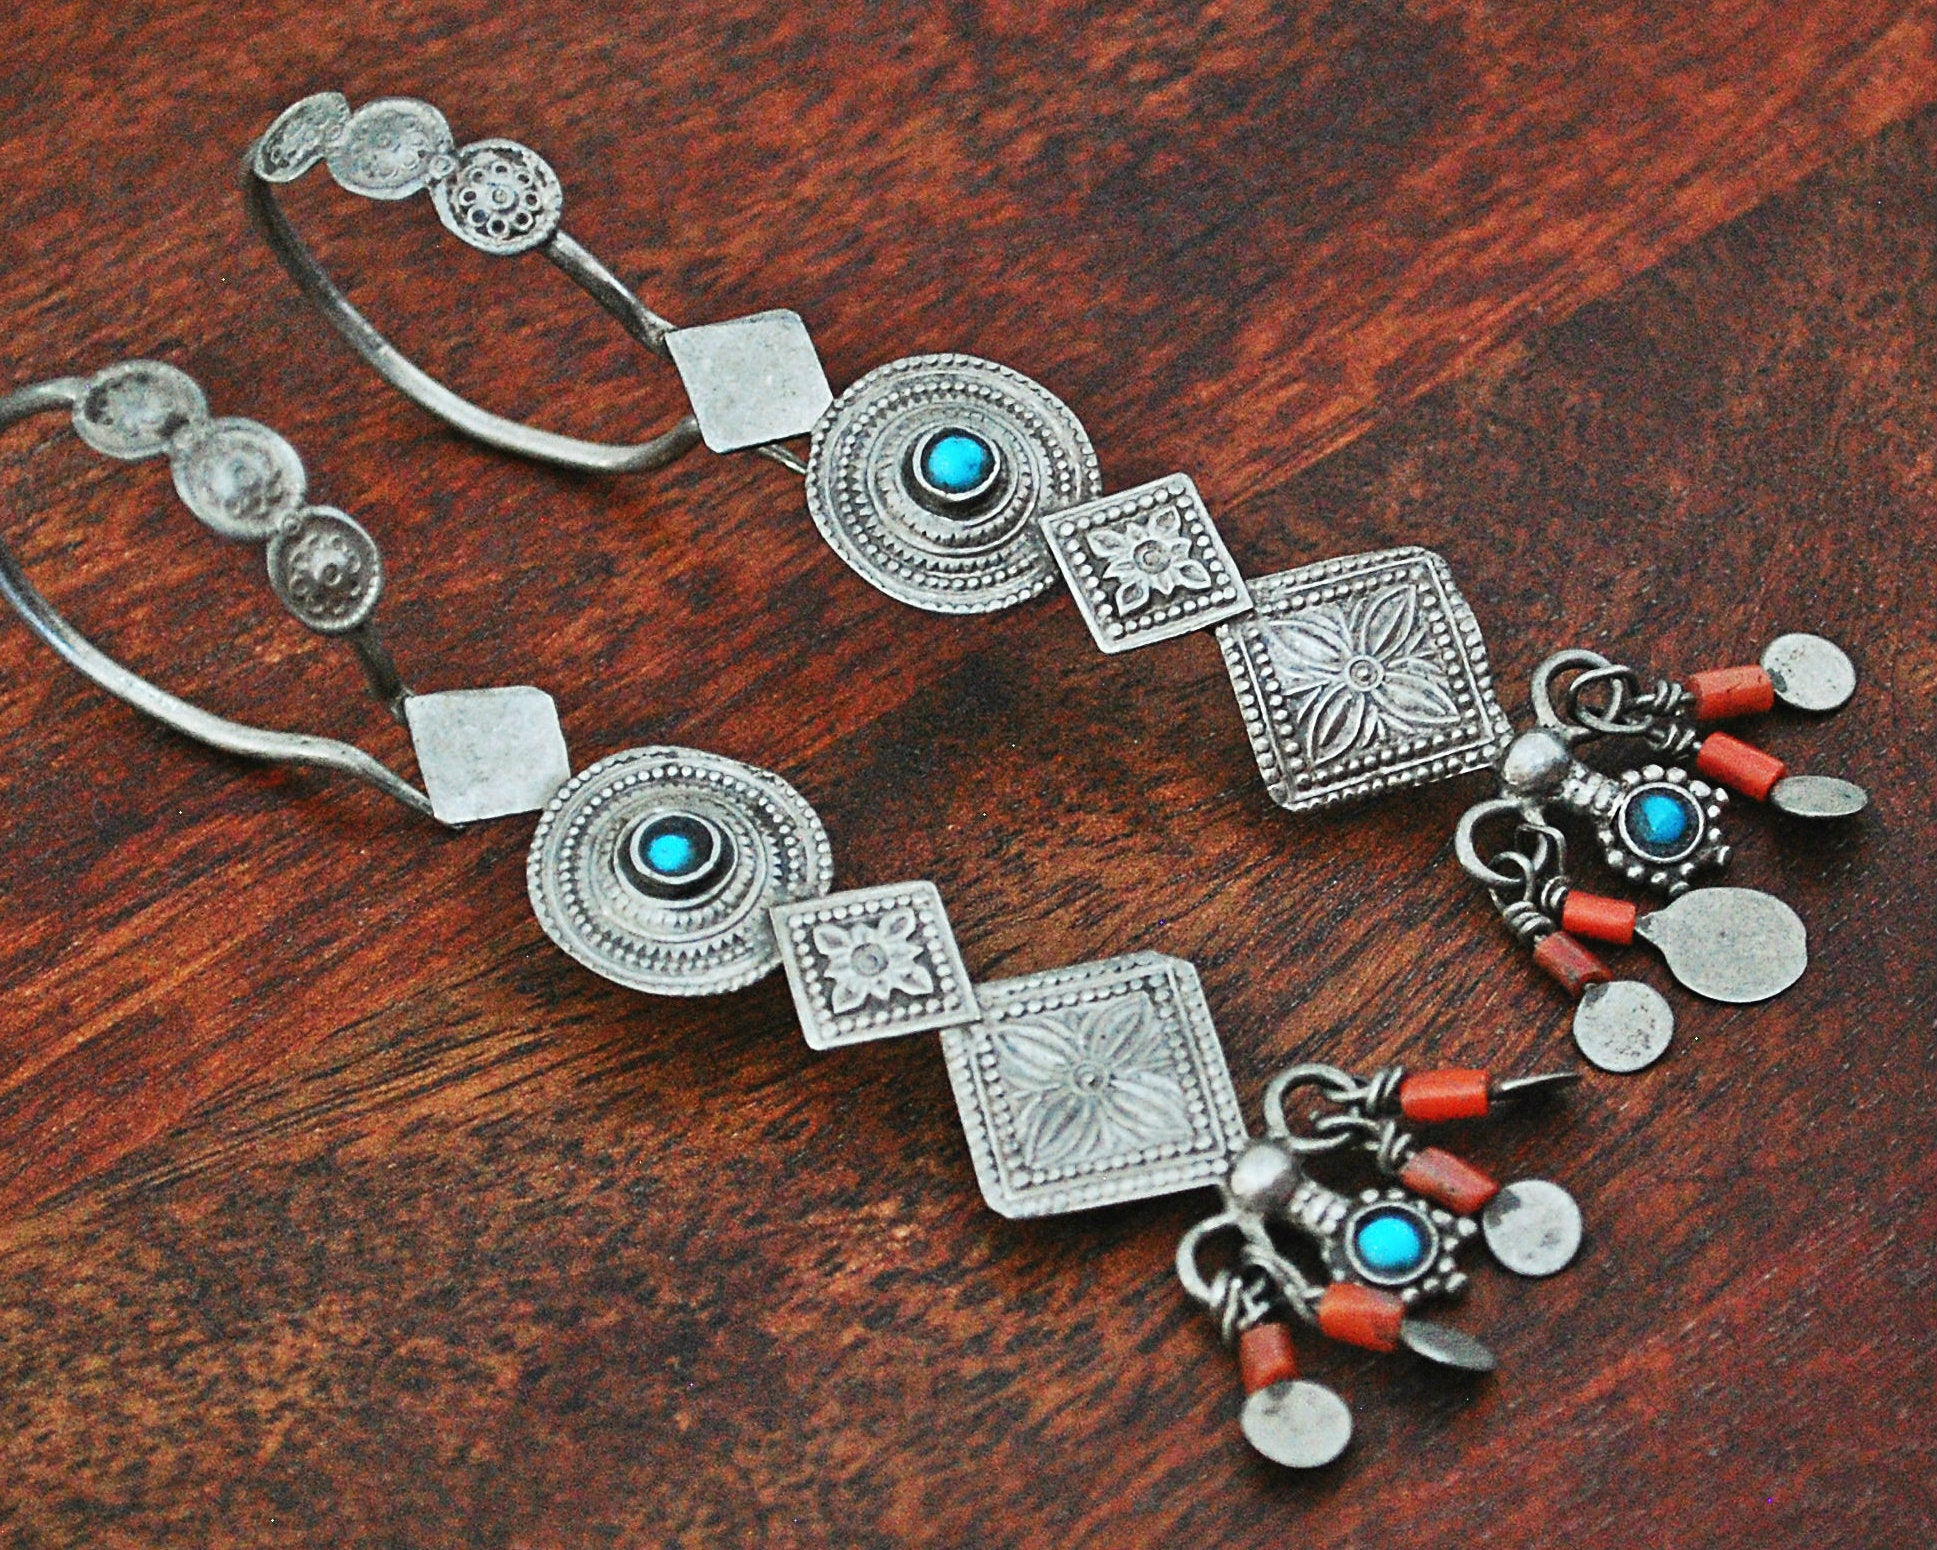 Antique Afghani Earrings with Coral and Turquoise